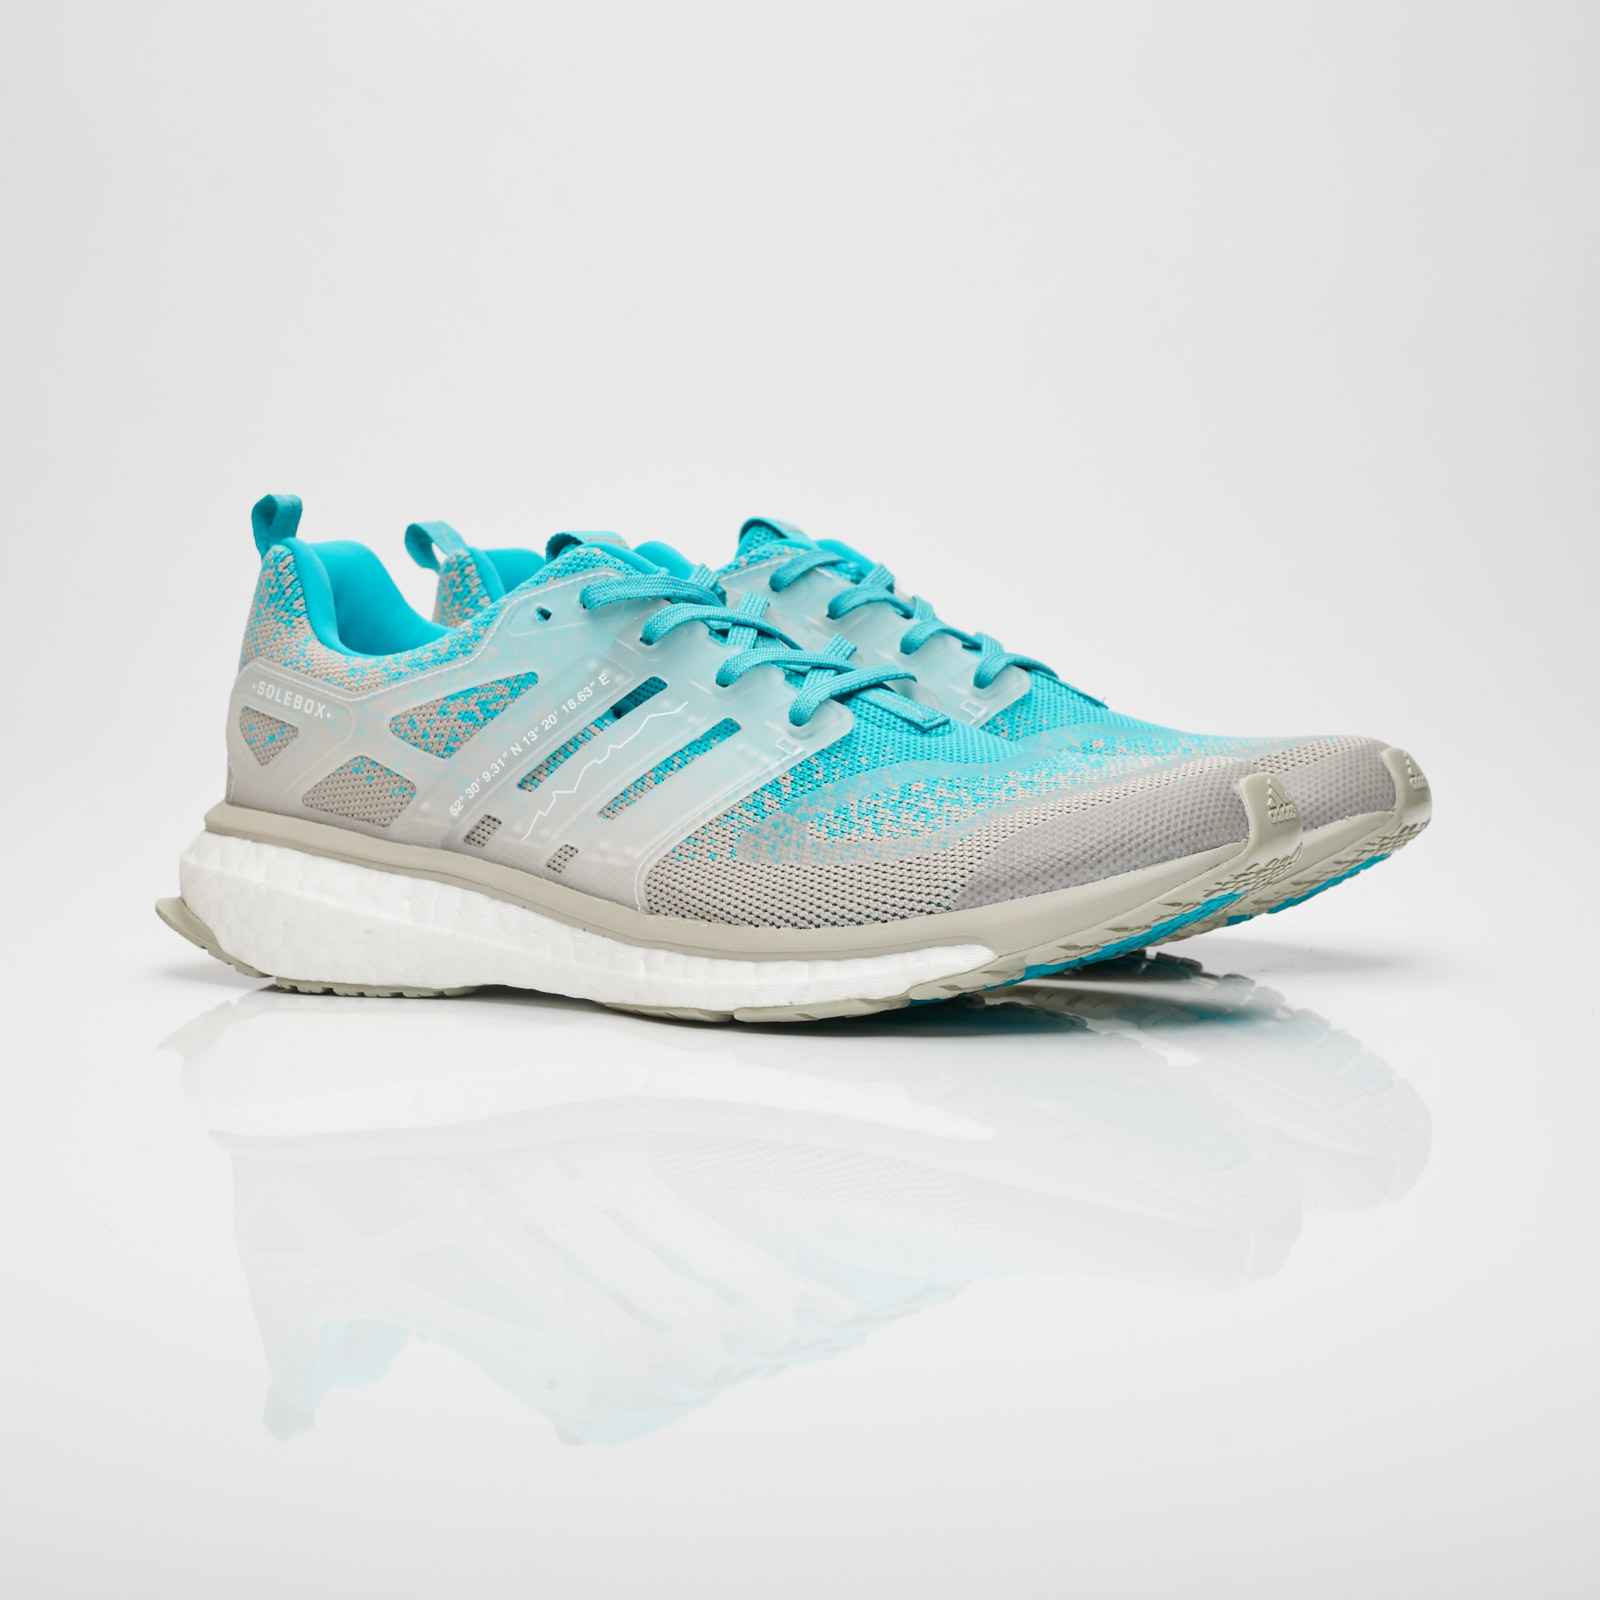 separation shoes b0771 40556 adidas Consortium Energy Boost Packer x Solebox